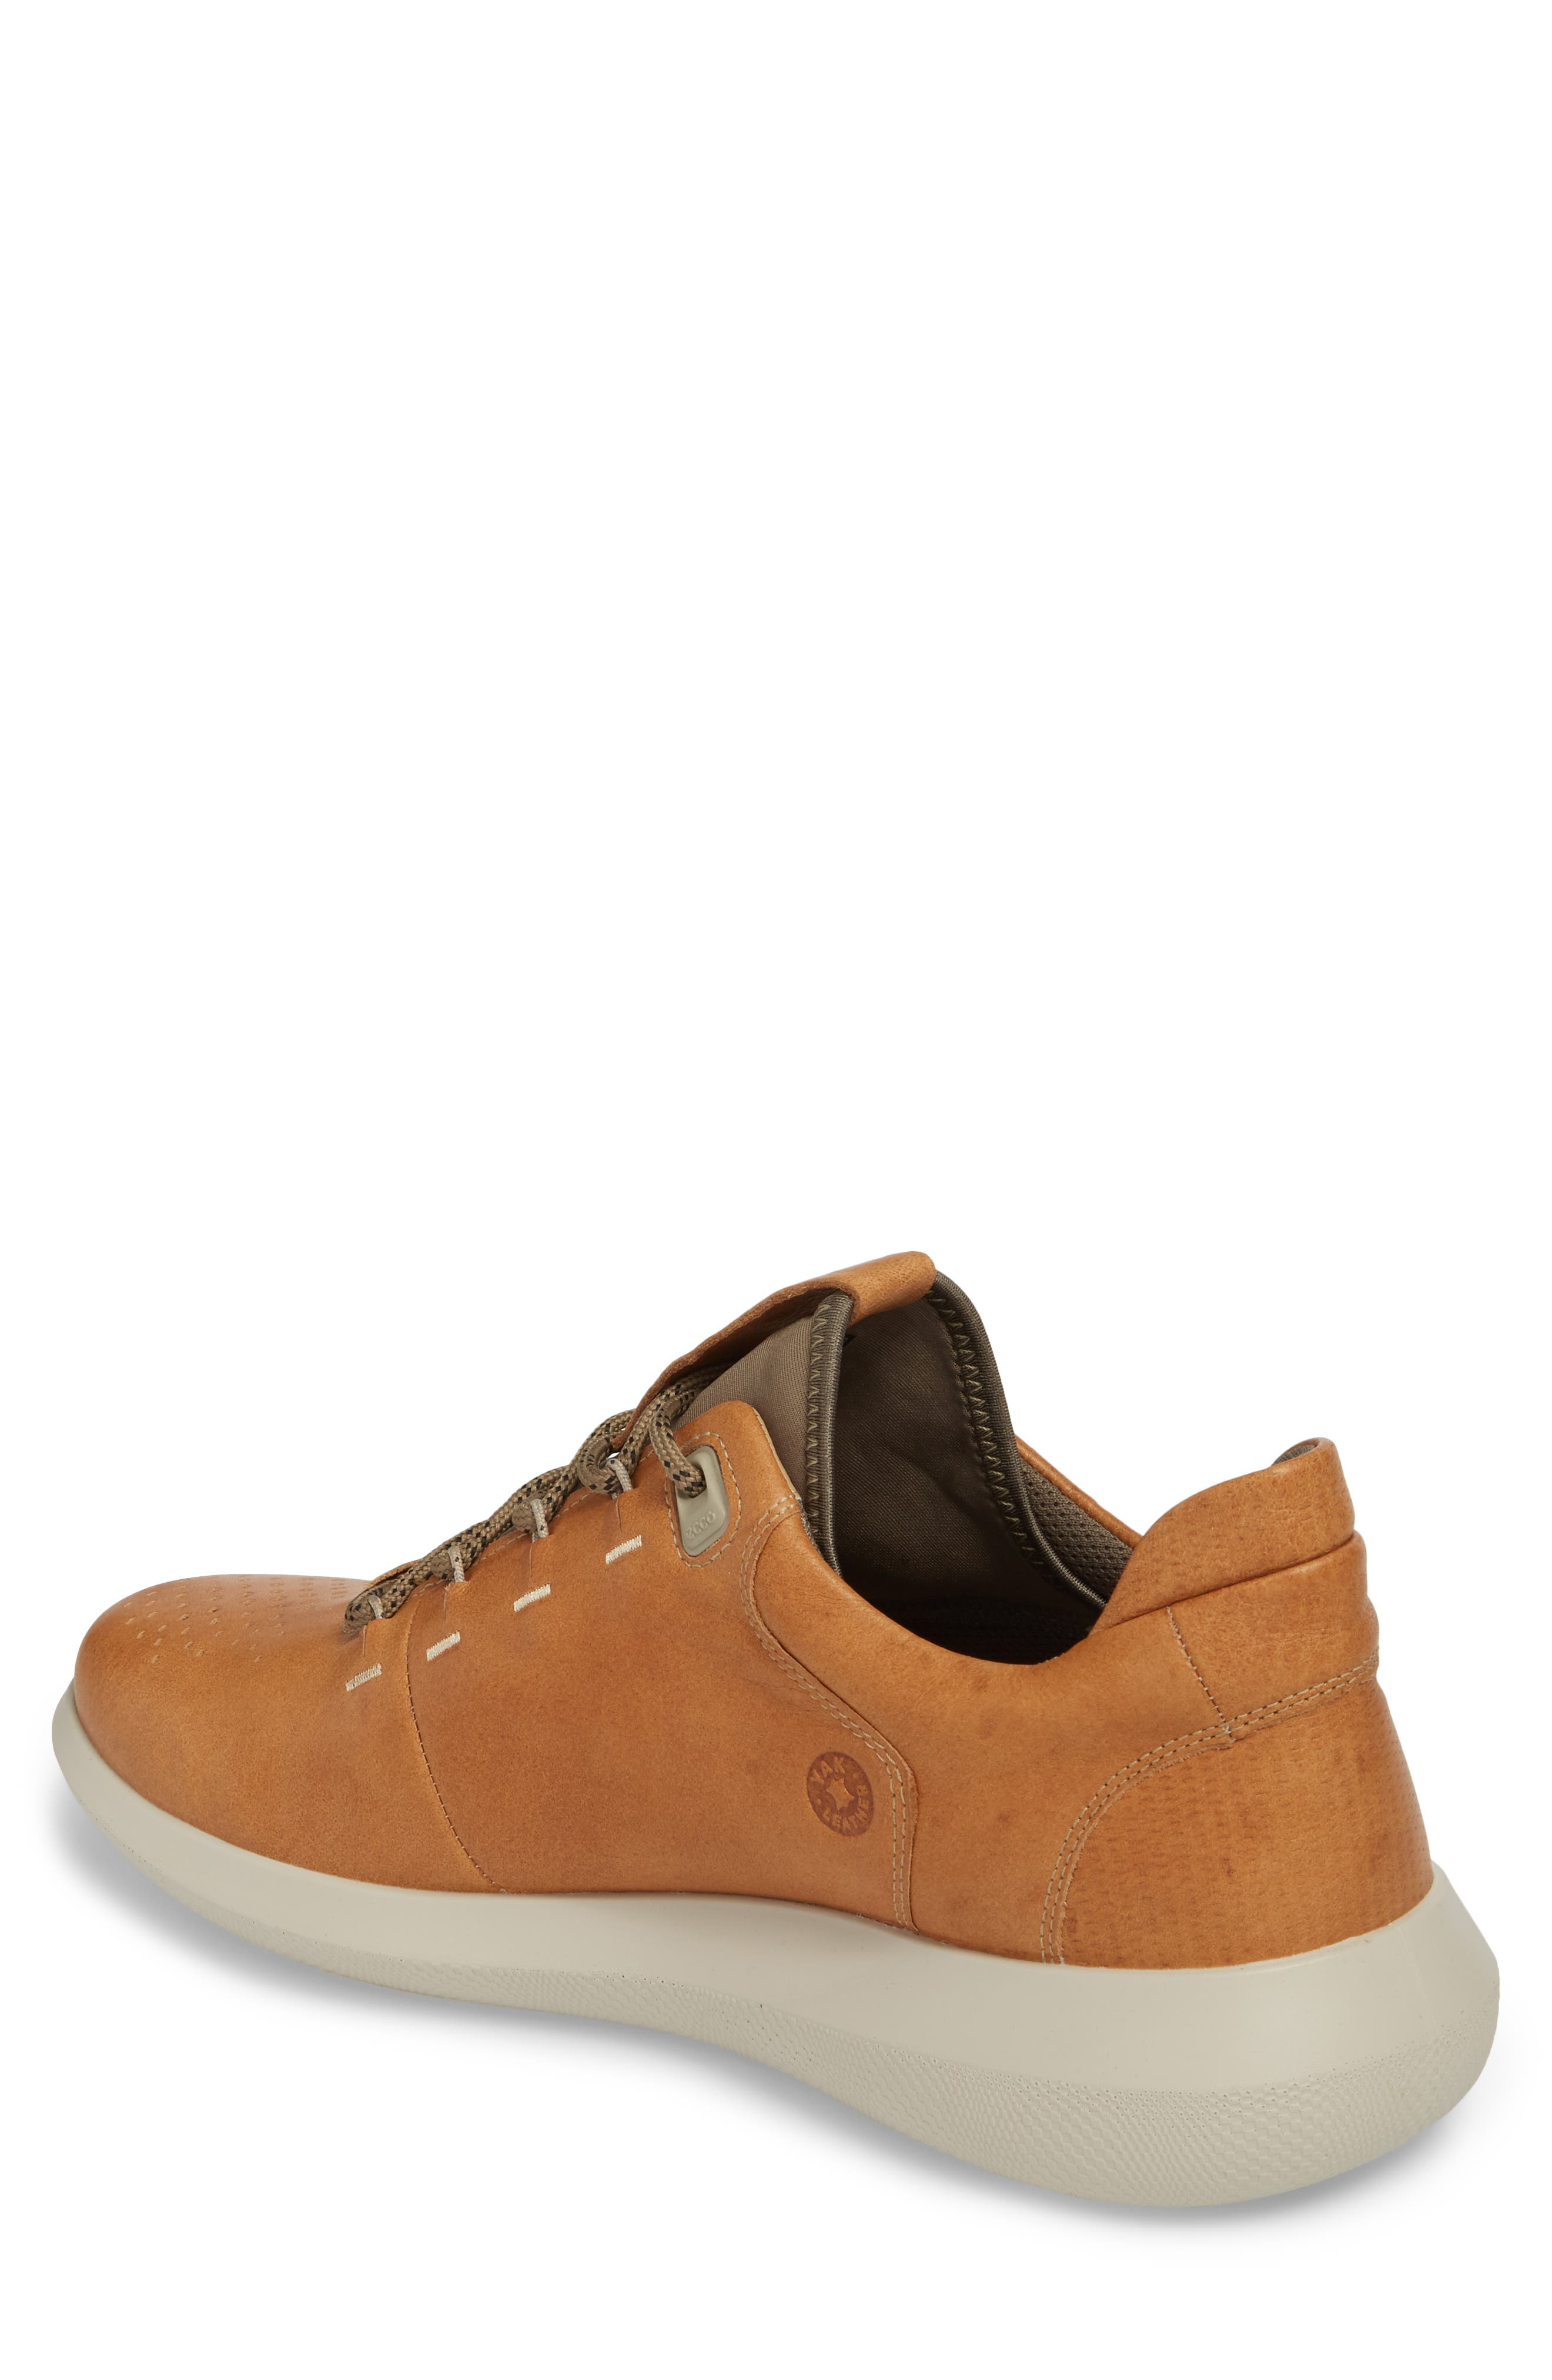 Scinapse Sneaker,                             Alternate thumbnail 2, color,                             Brown Leather